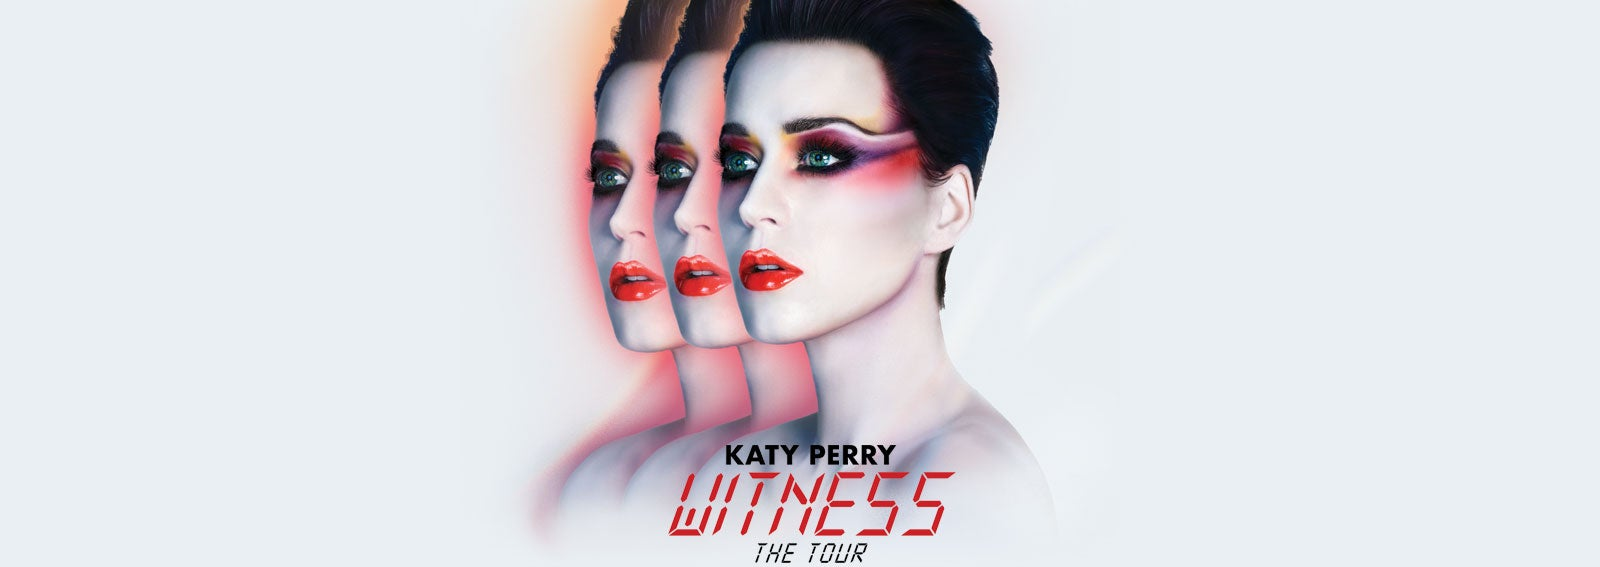 Katy perry witness the tour events glasgow the sse hydro kristyandbryce Gallery